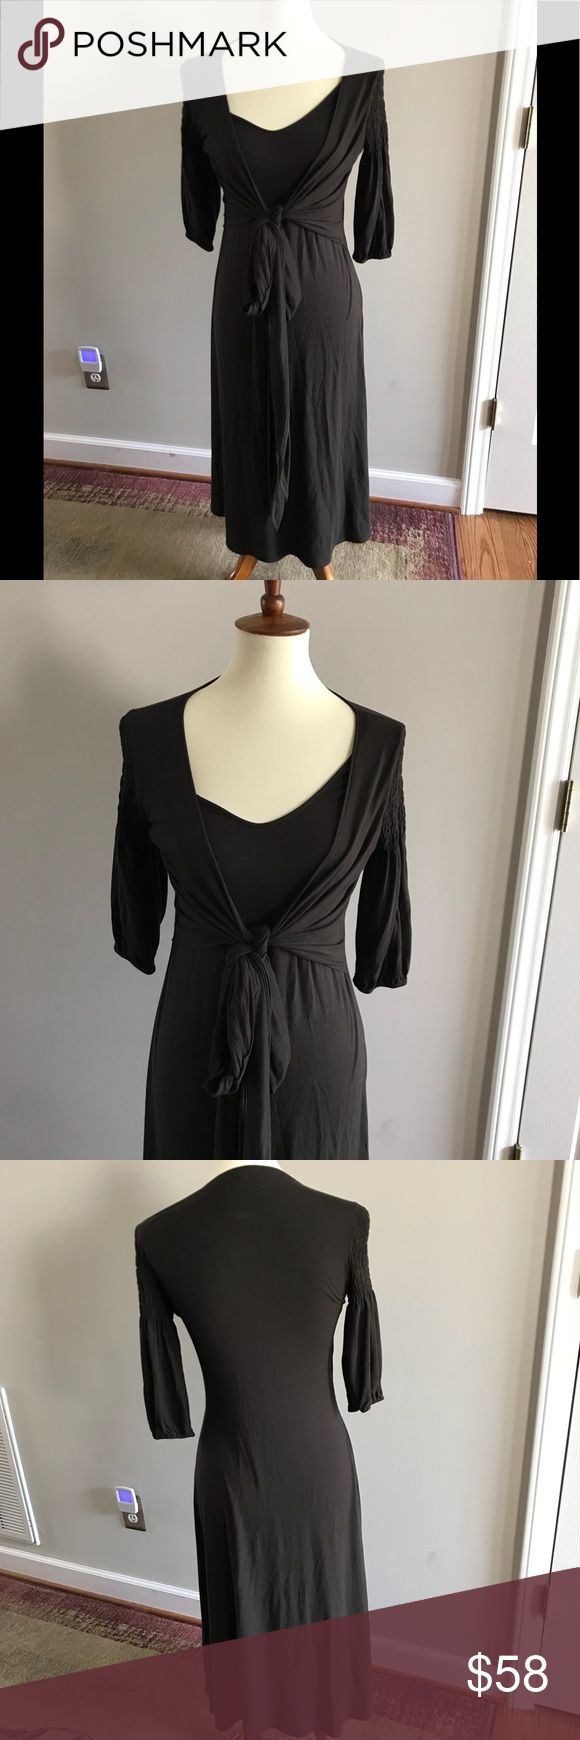 Theory tie front jersey midi dress Pics don't do it justice! Comfy and classy all In one. So soft! Ties in front. Dark chocolate brown. Would be perfect with gold sandals this summer. 95% rayon and5% elastane, has a nice stretch to it. Measures 17.5 inches armpit to armpit and 41 inches long from shoulder. Theory Dresses Midi